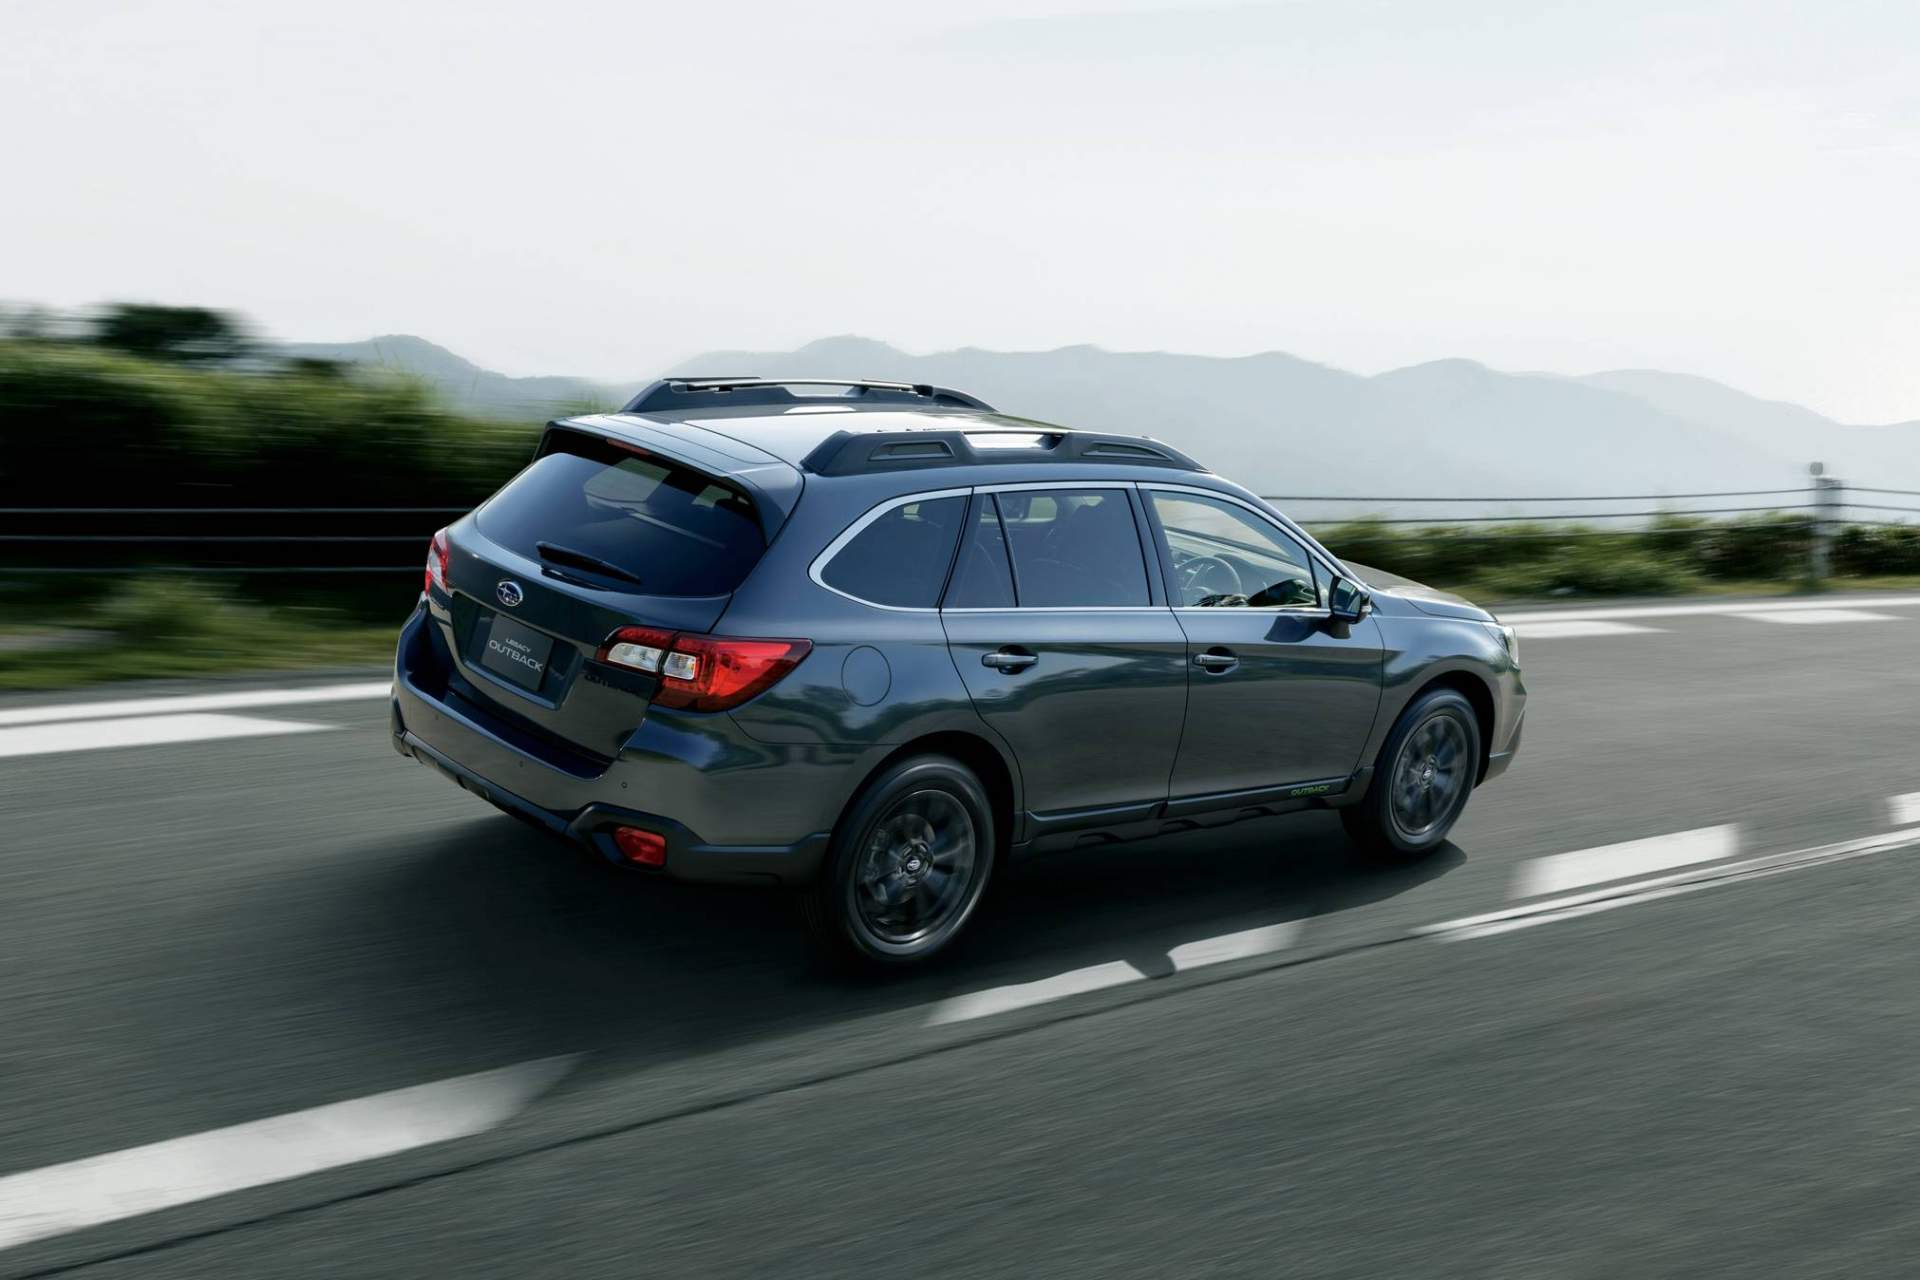 280ebd42-subaru-outback-x-break-14